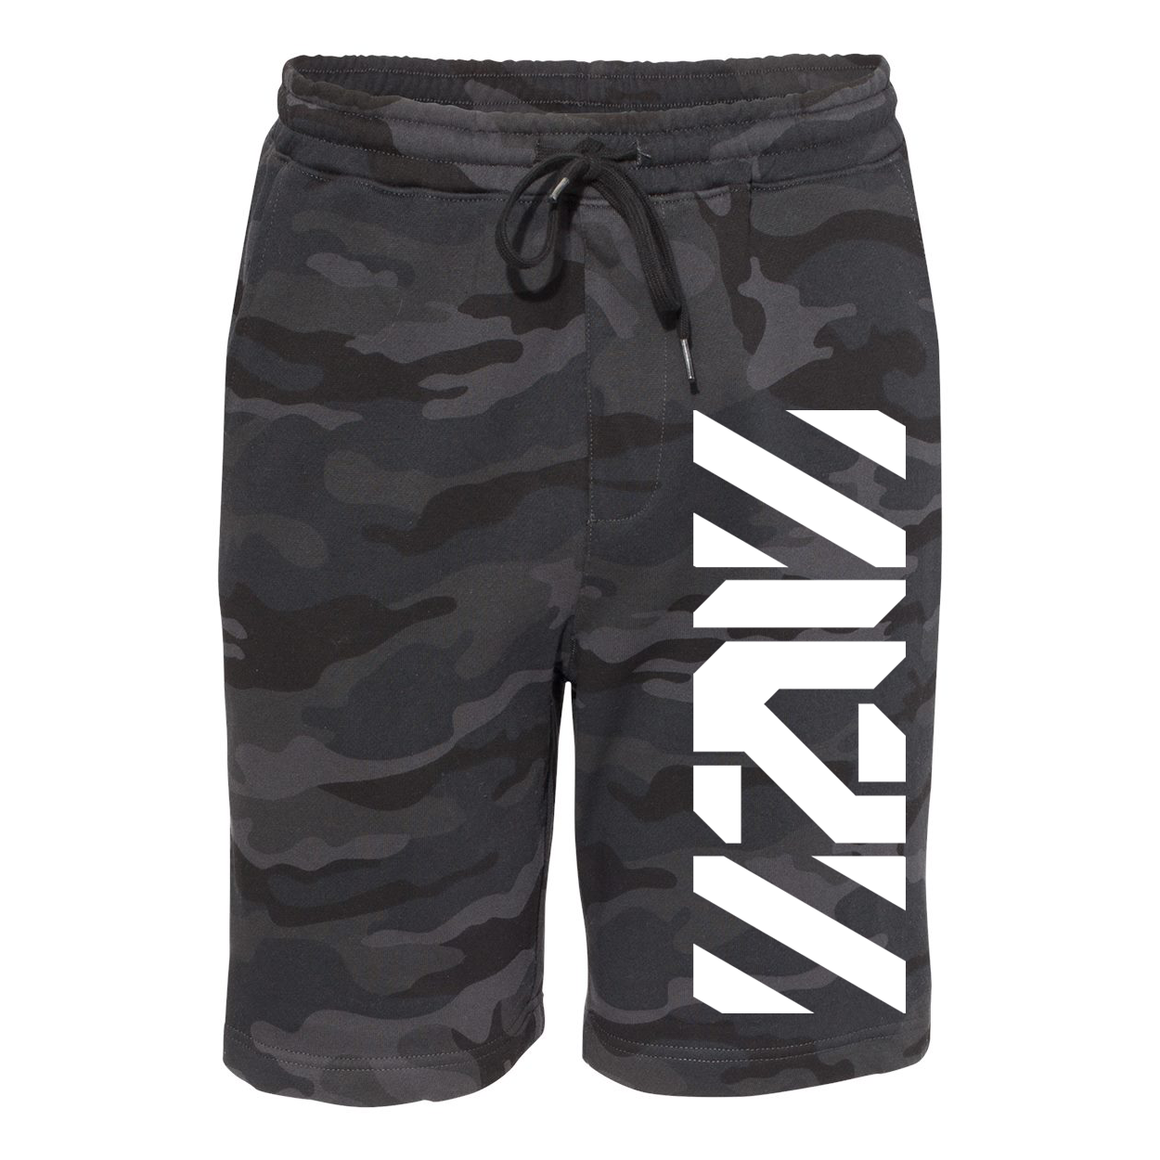 Blitz Shorts - Black Camo